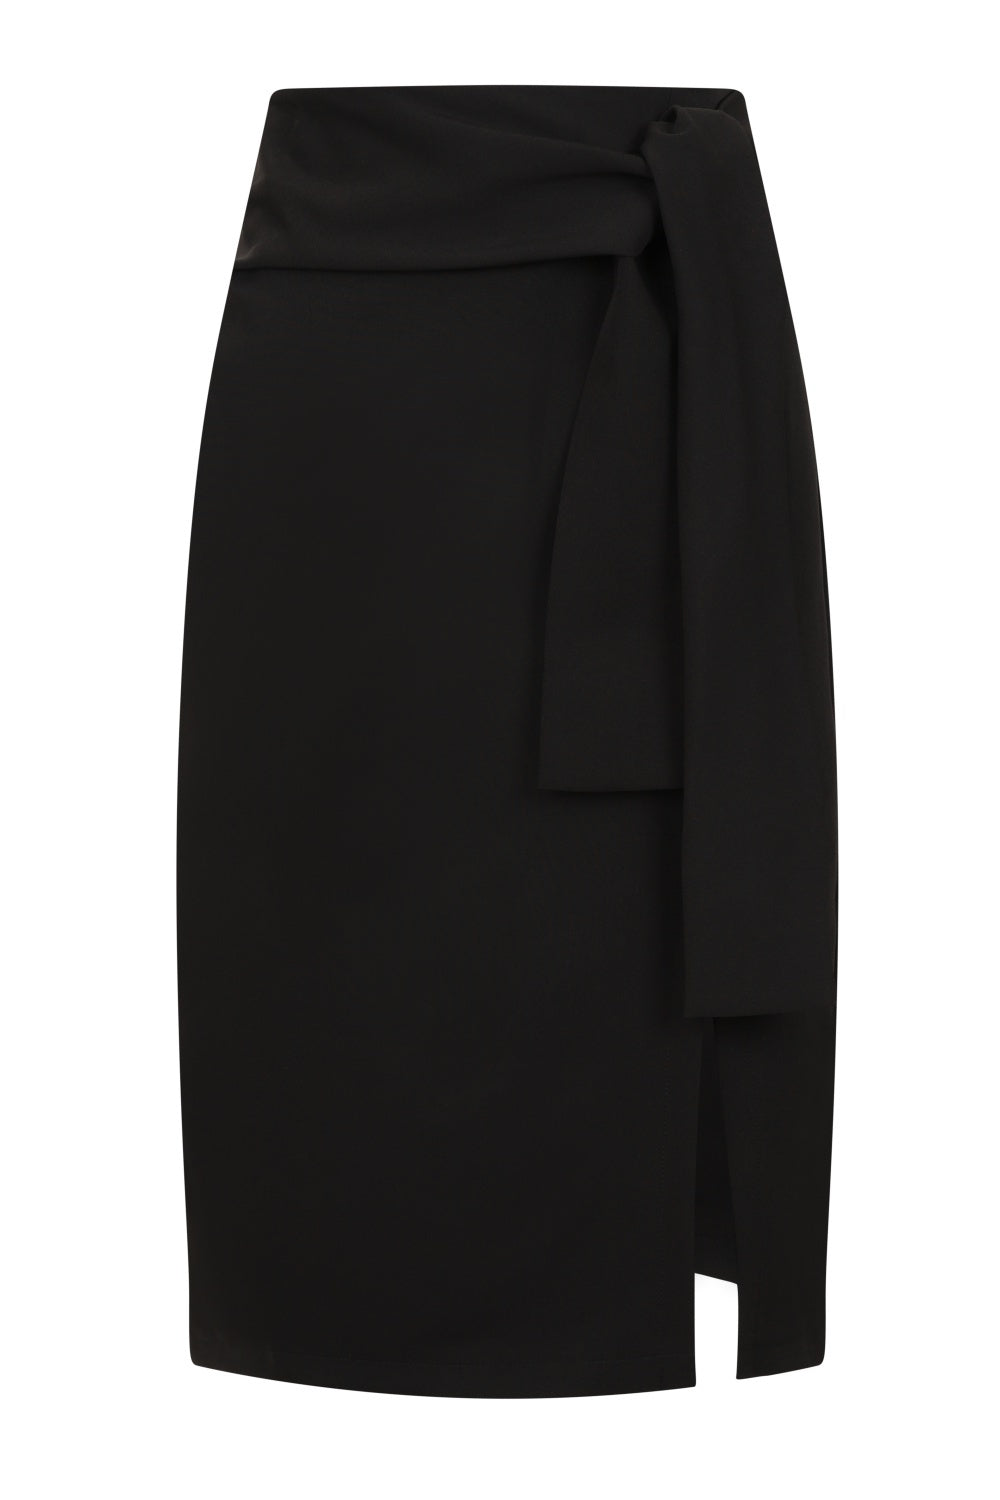 Bow Skirt Black